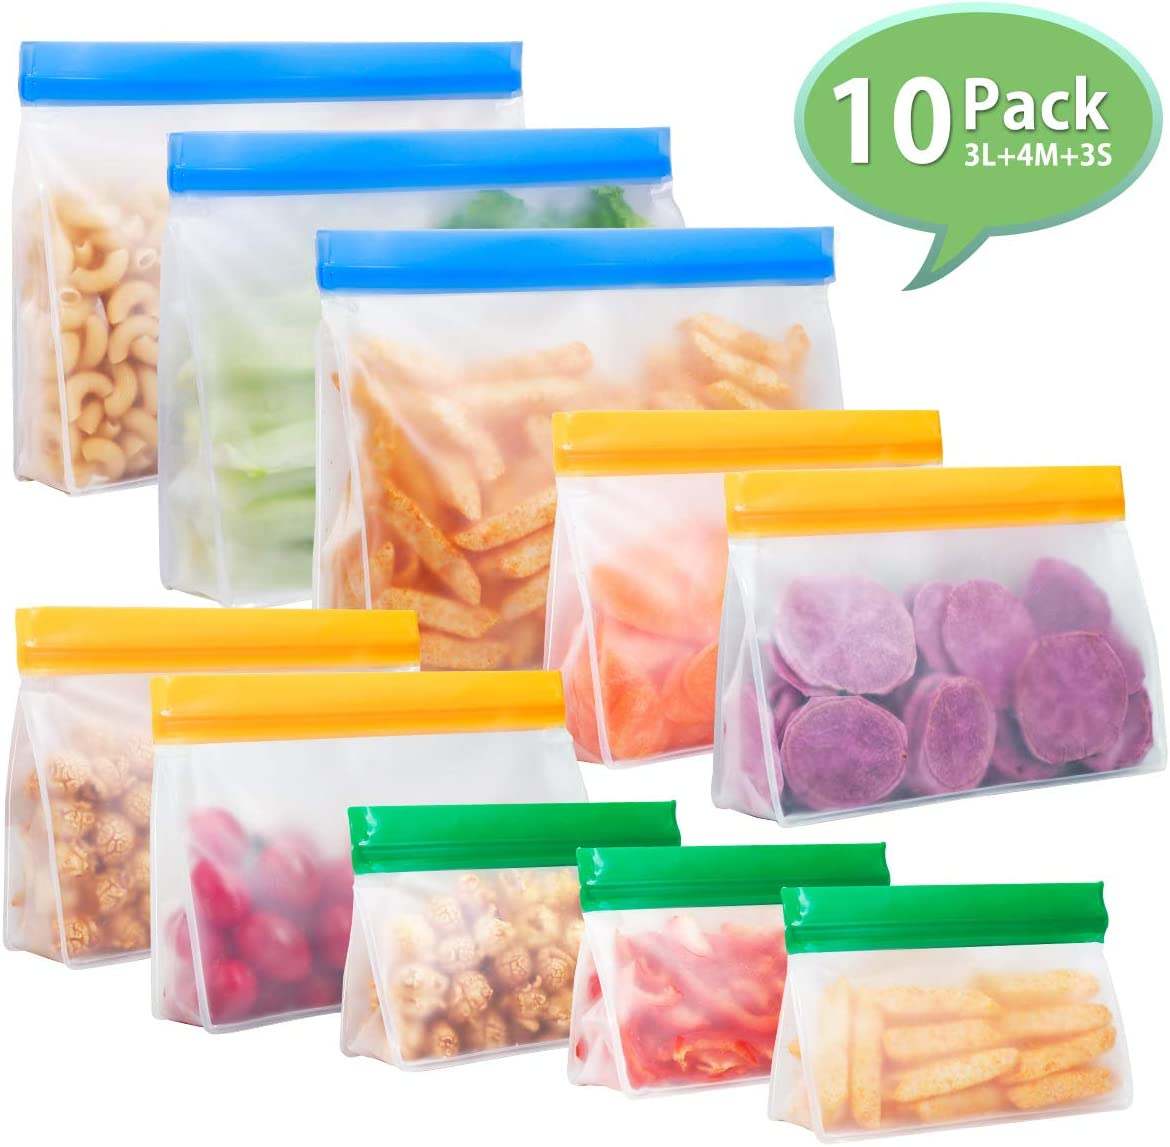 Reusable Sandwich Bags, Ziplock Bags, Godmorn Food Storage Bags, 10 Pack Leakproof Snack Bags, Extra Thick BPA-Free FDA Food Grade Big Capacity Stand-Up Organizer for Home Travel, Freezer Safe